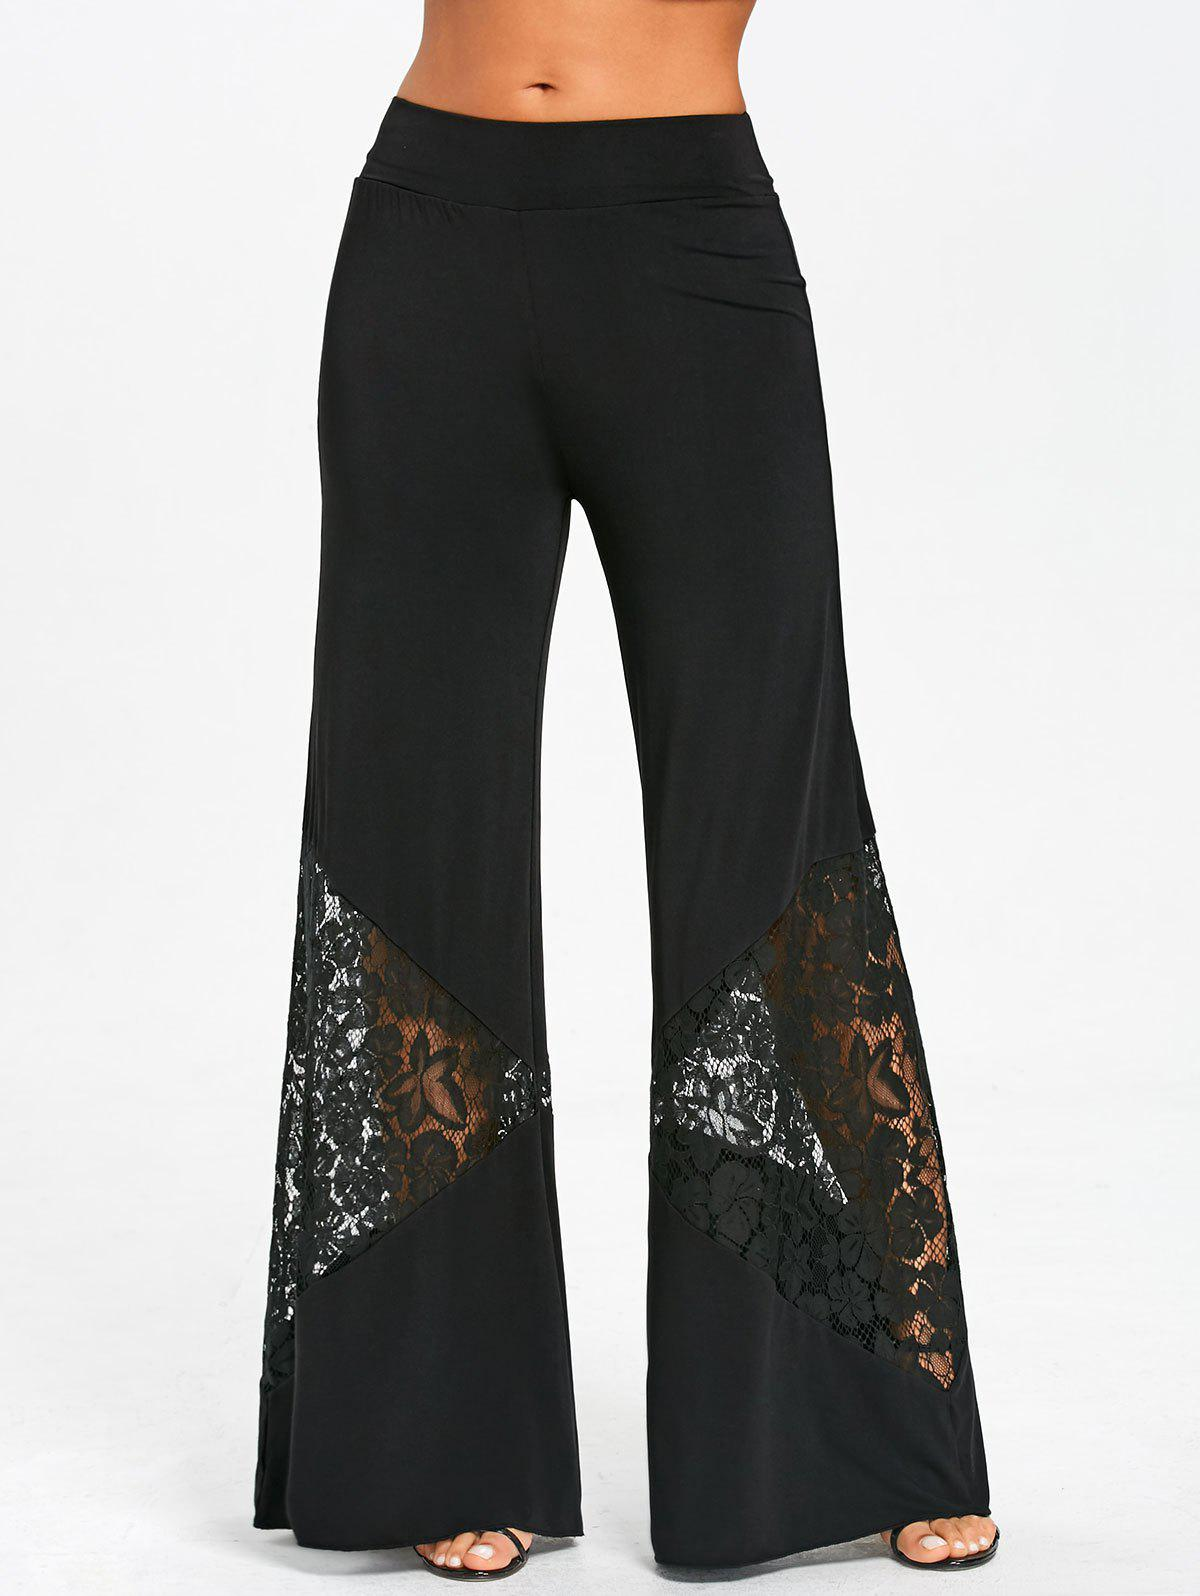 Lace Insert Elastic Waist Wide Leg Pants - BLACK XL